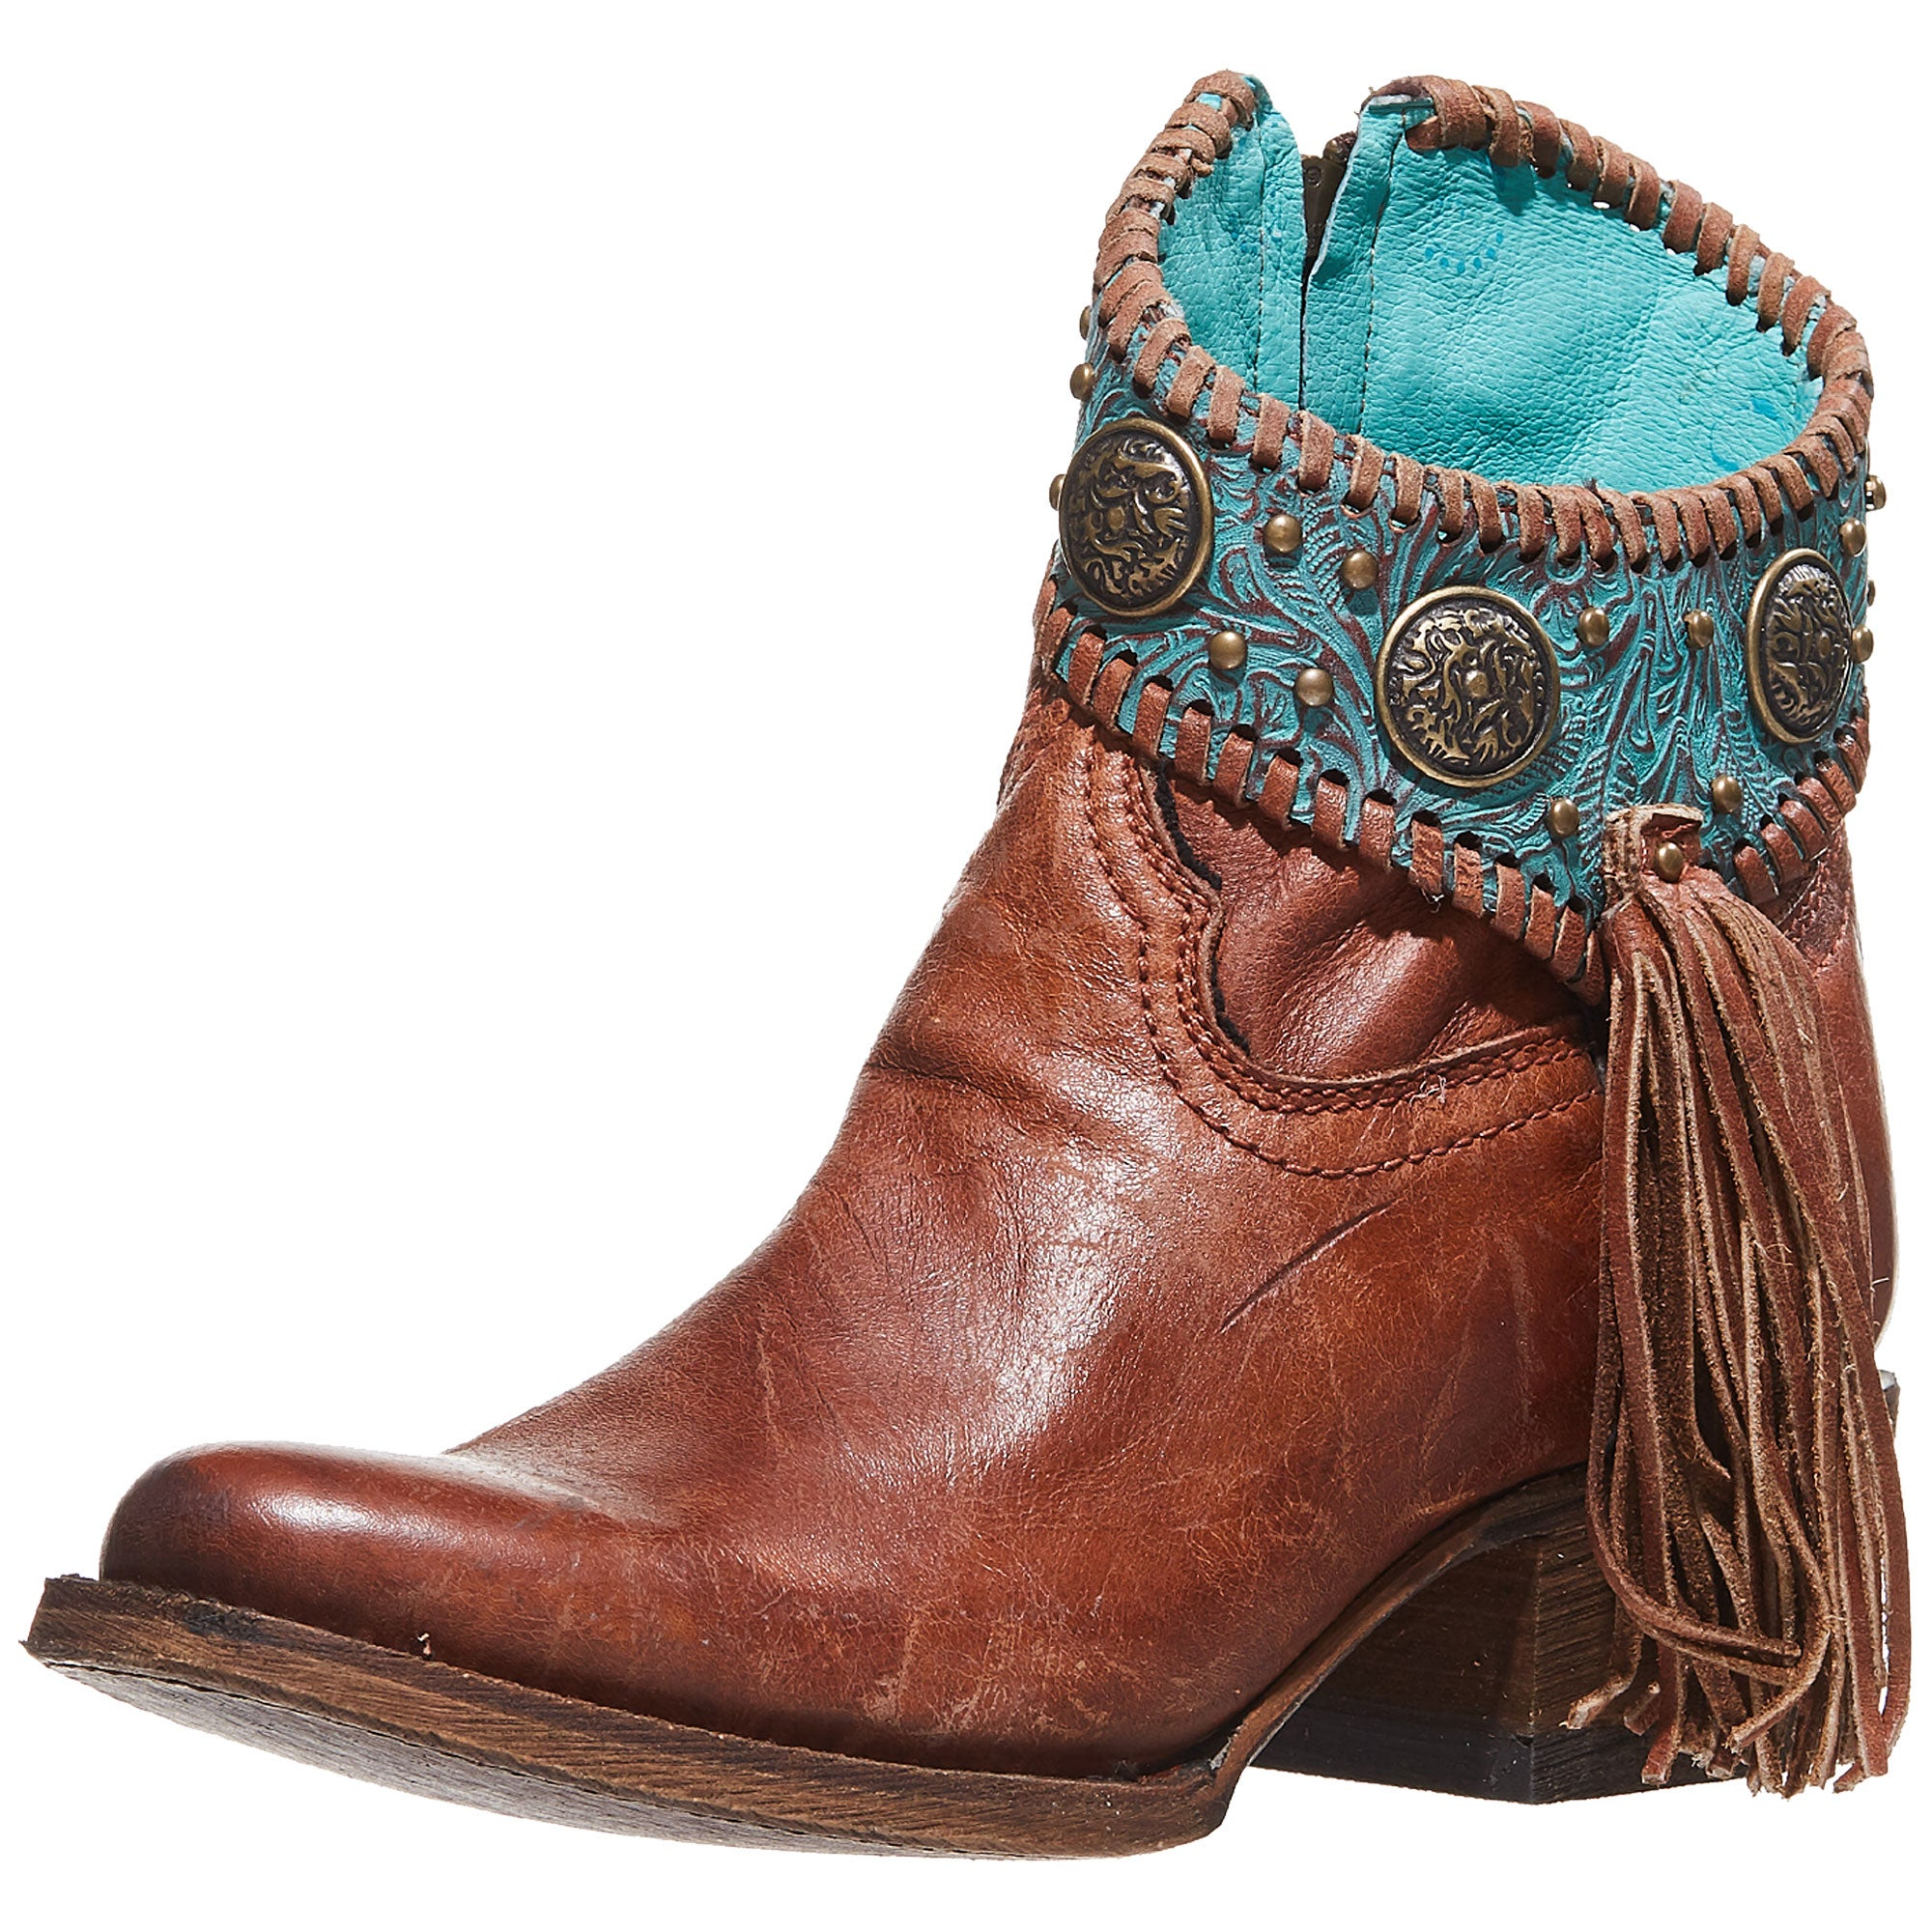 3e81b2a19db Corral Ladies' Emma Concho Embellished Ankle Boots - Riding Warehouse